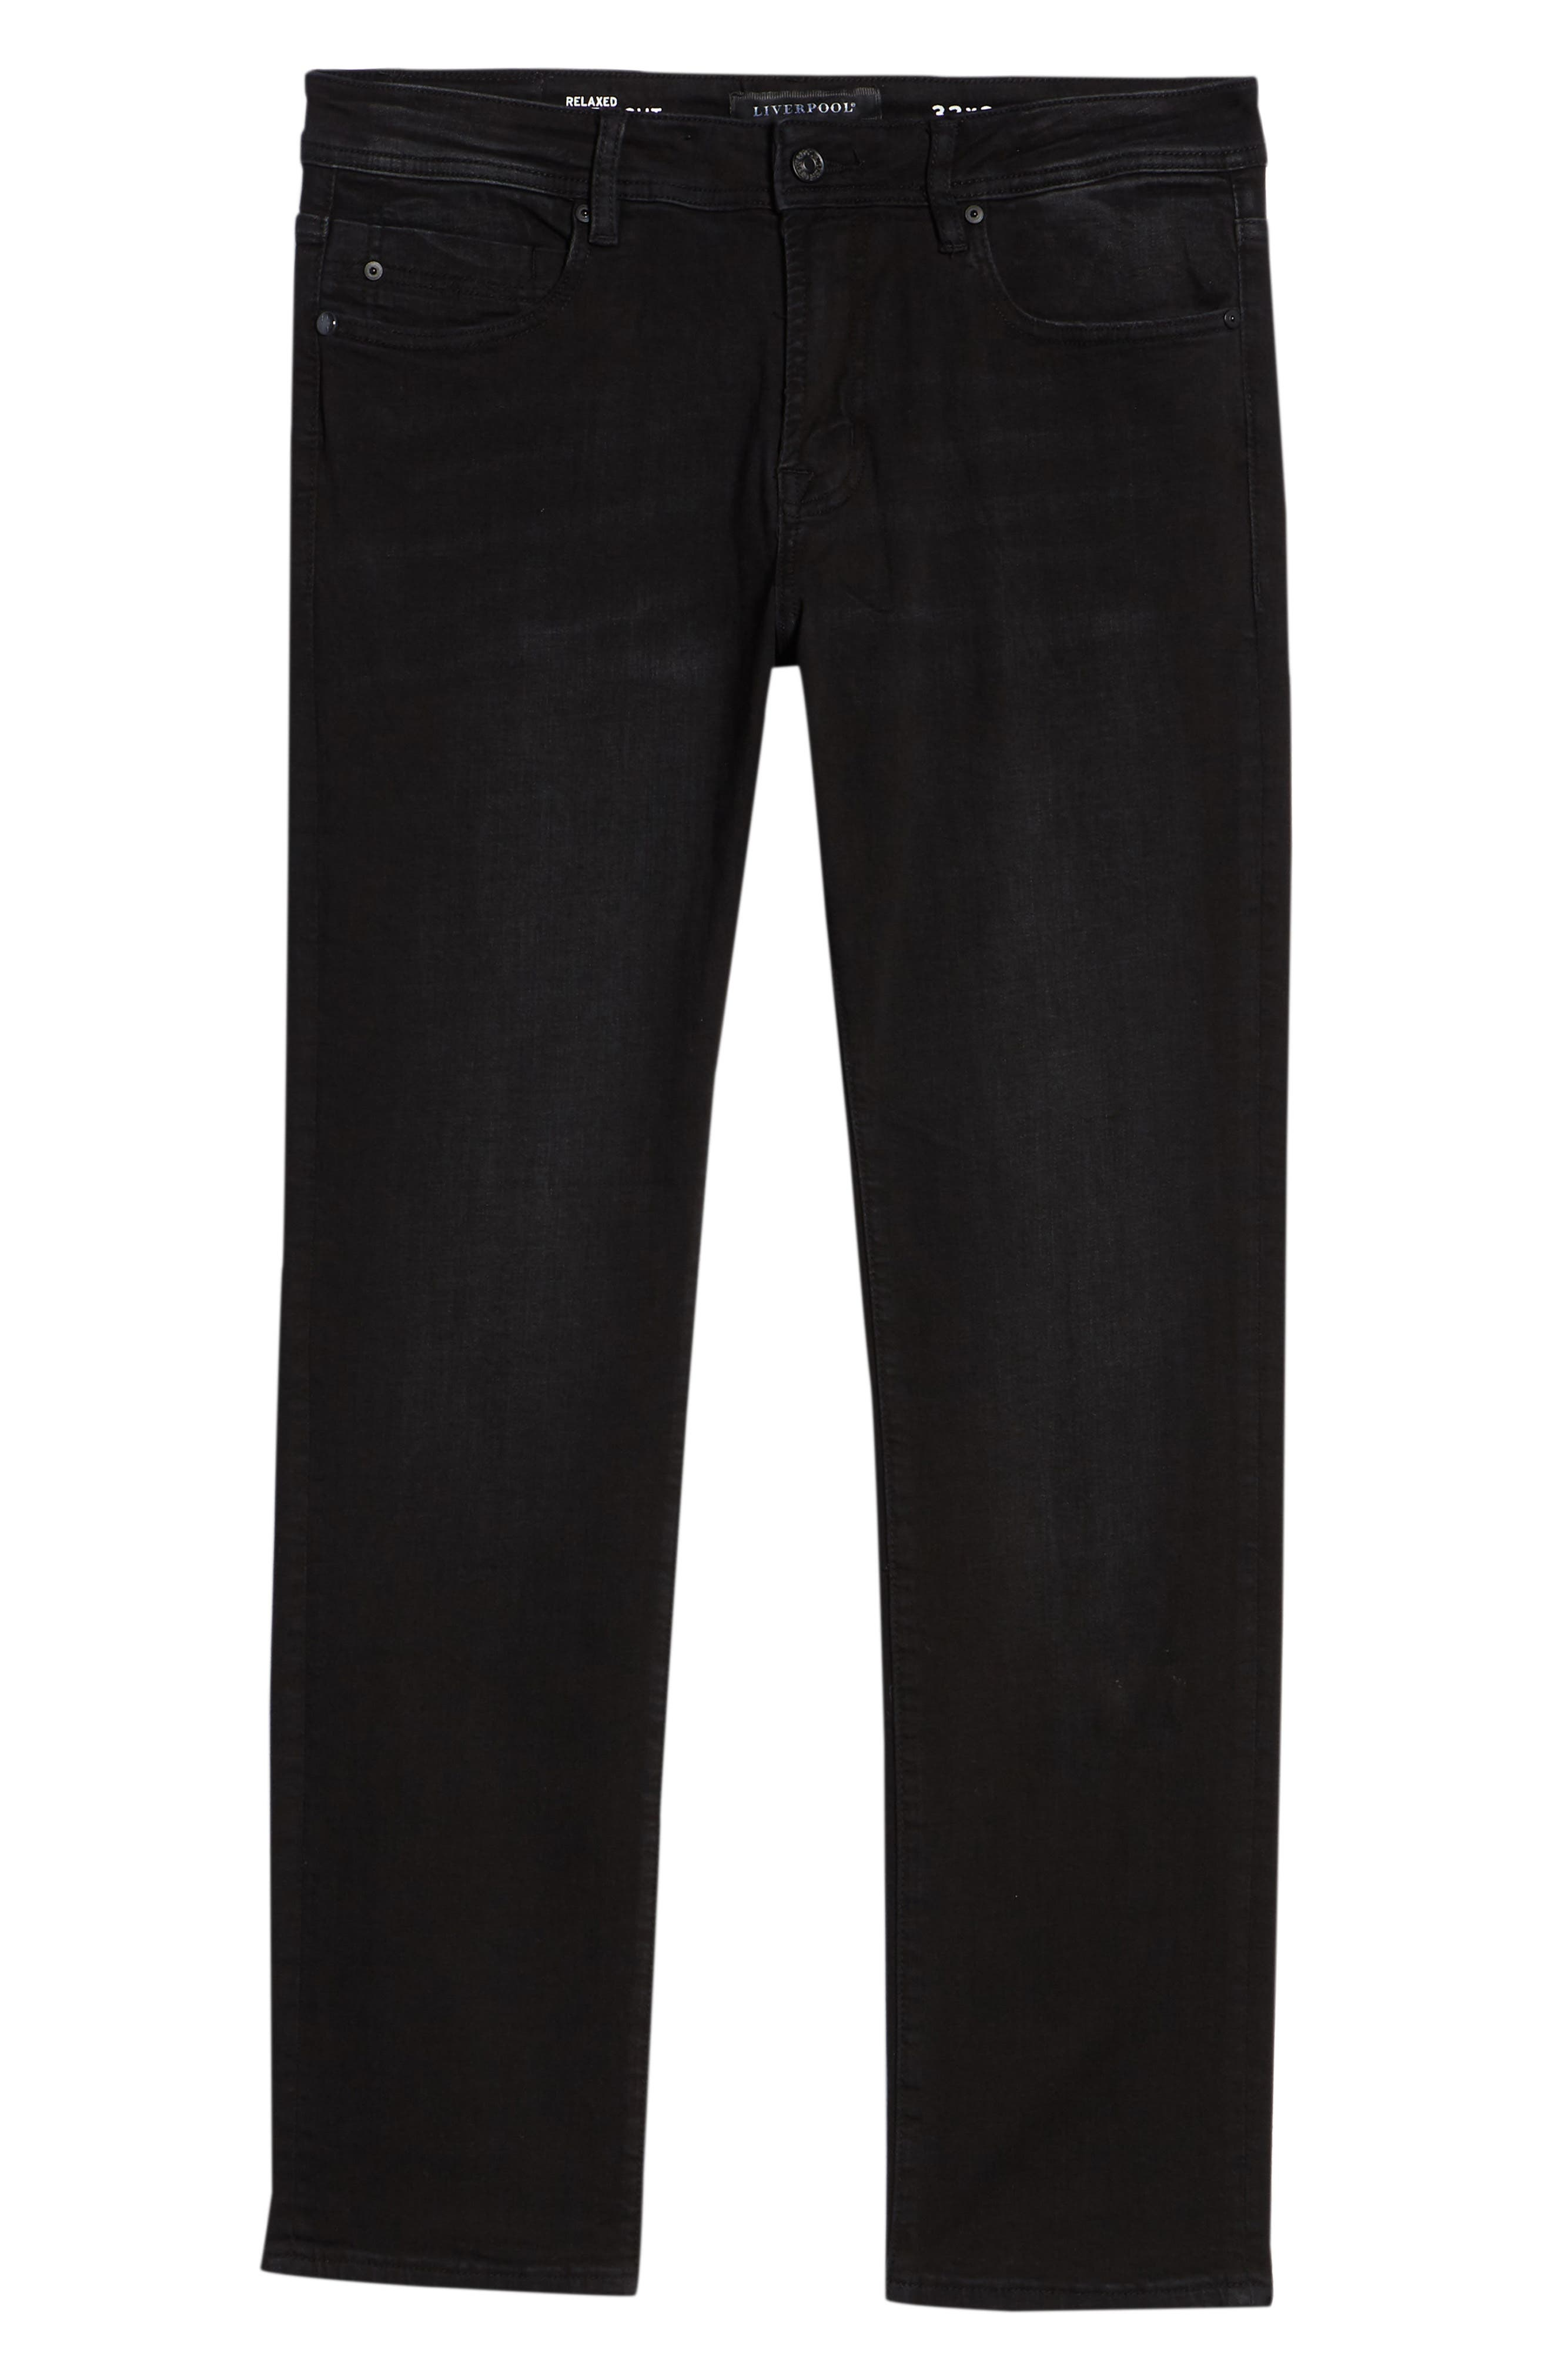 Relaxed Fit Jeans,                             Alternate thumbnail 6, color,                             002